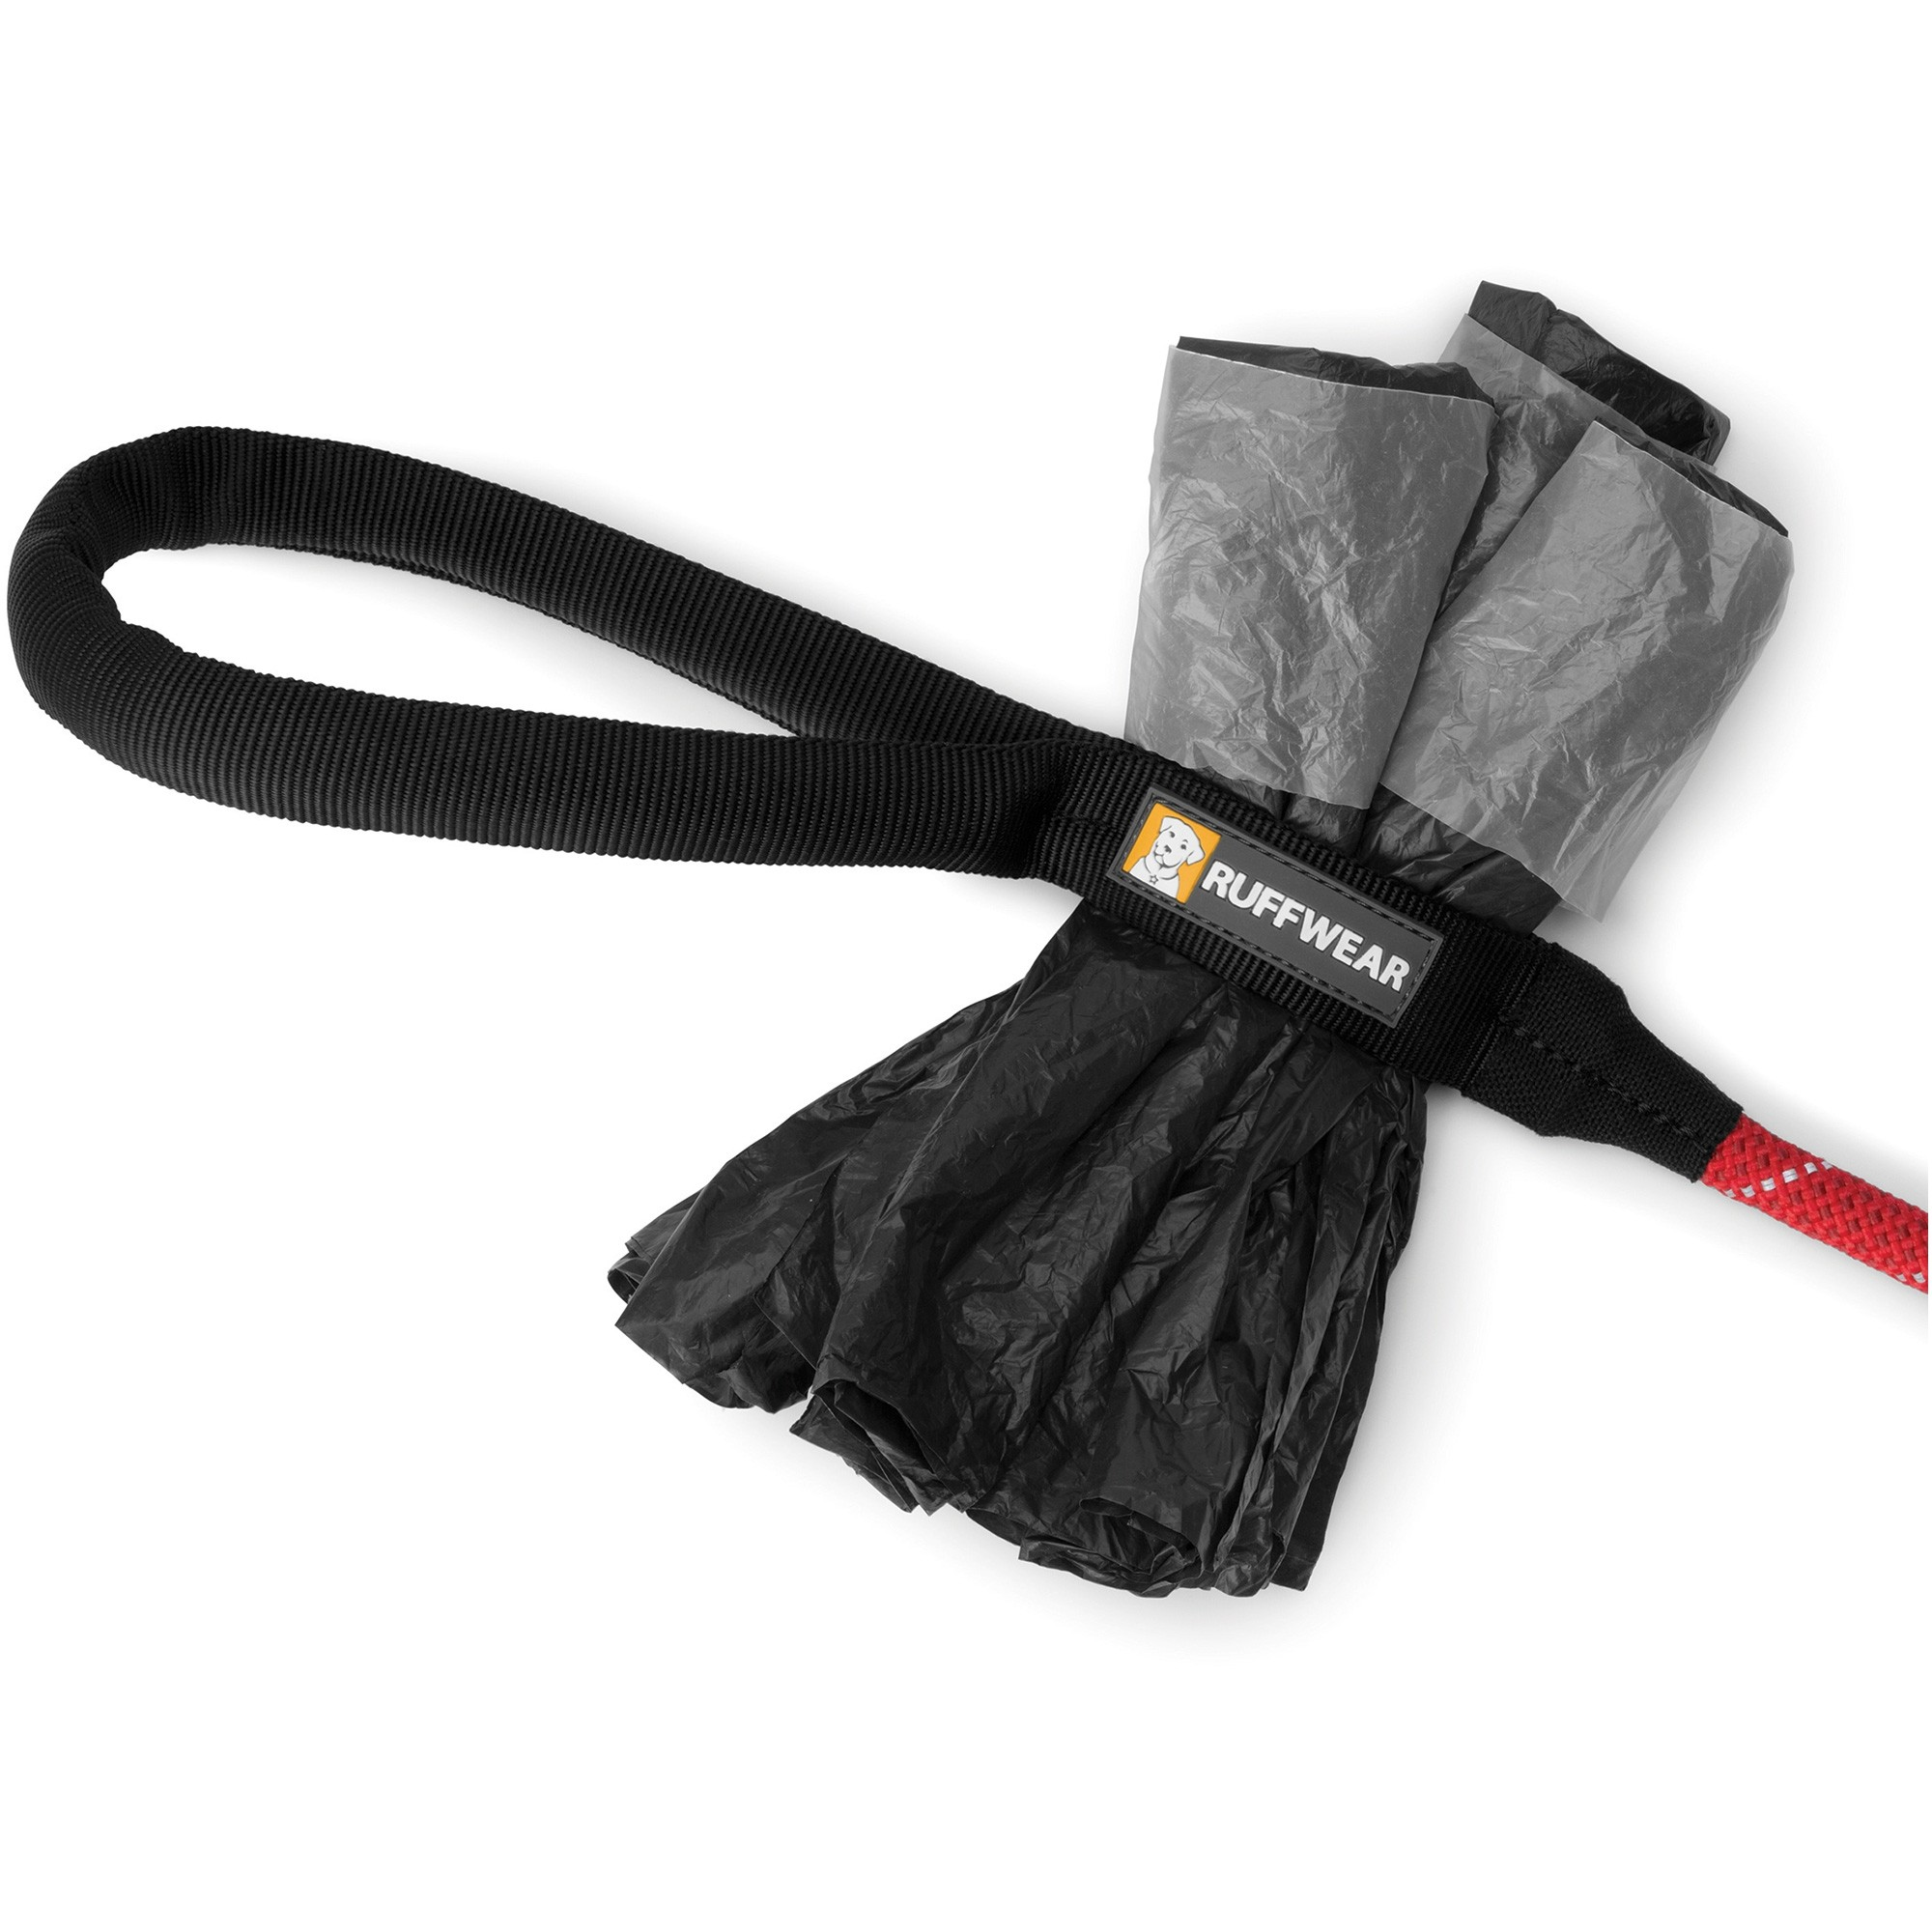 Ruffwear Knot-a-Long Leash - Red Currant - accessory loop